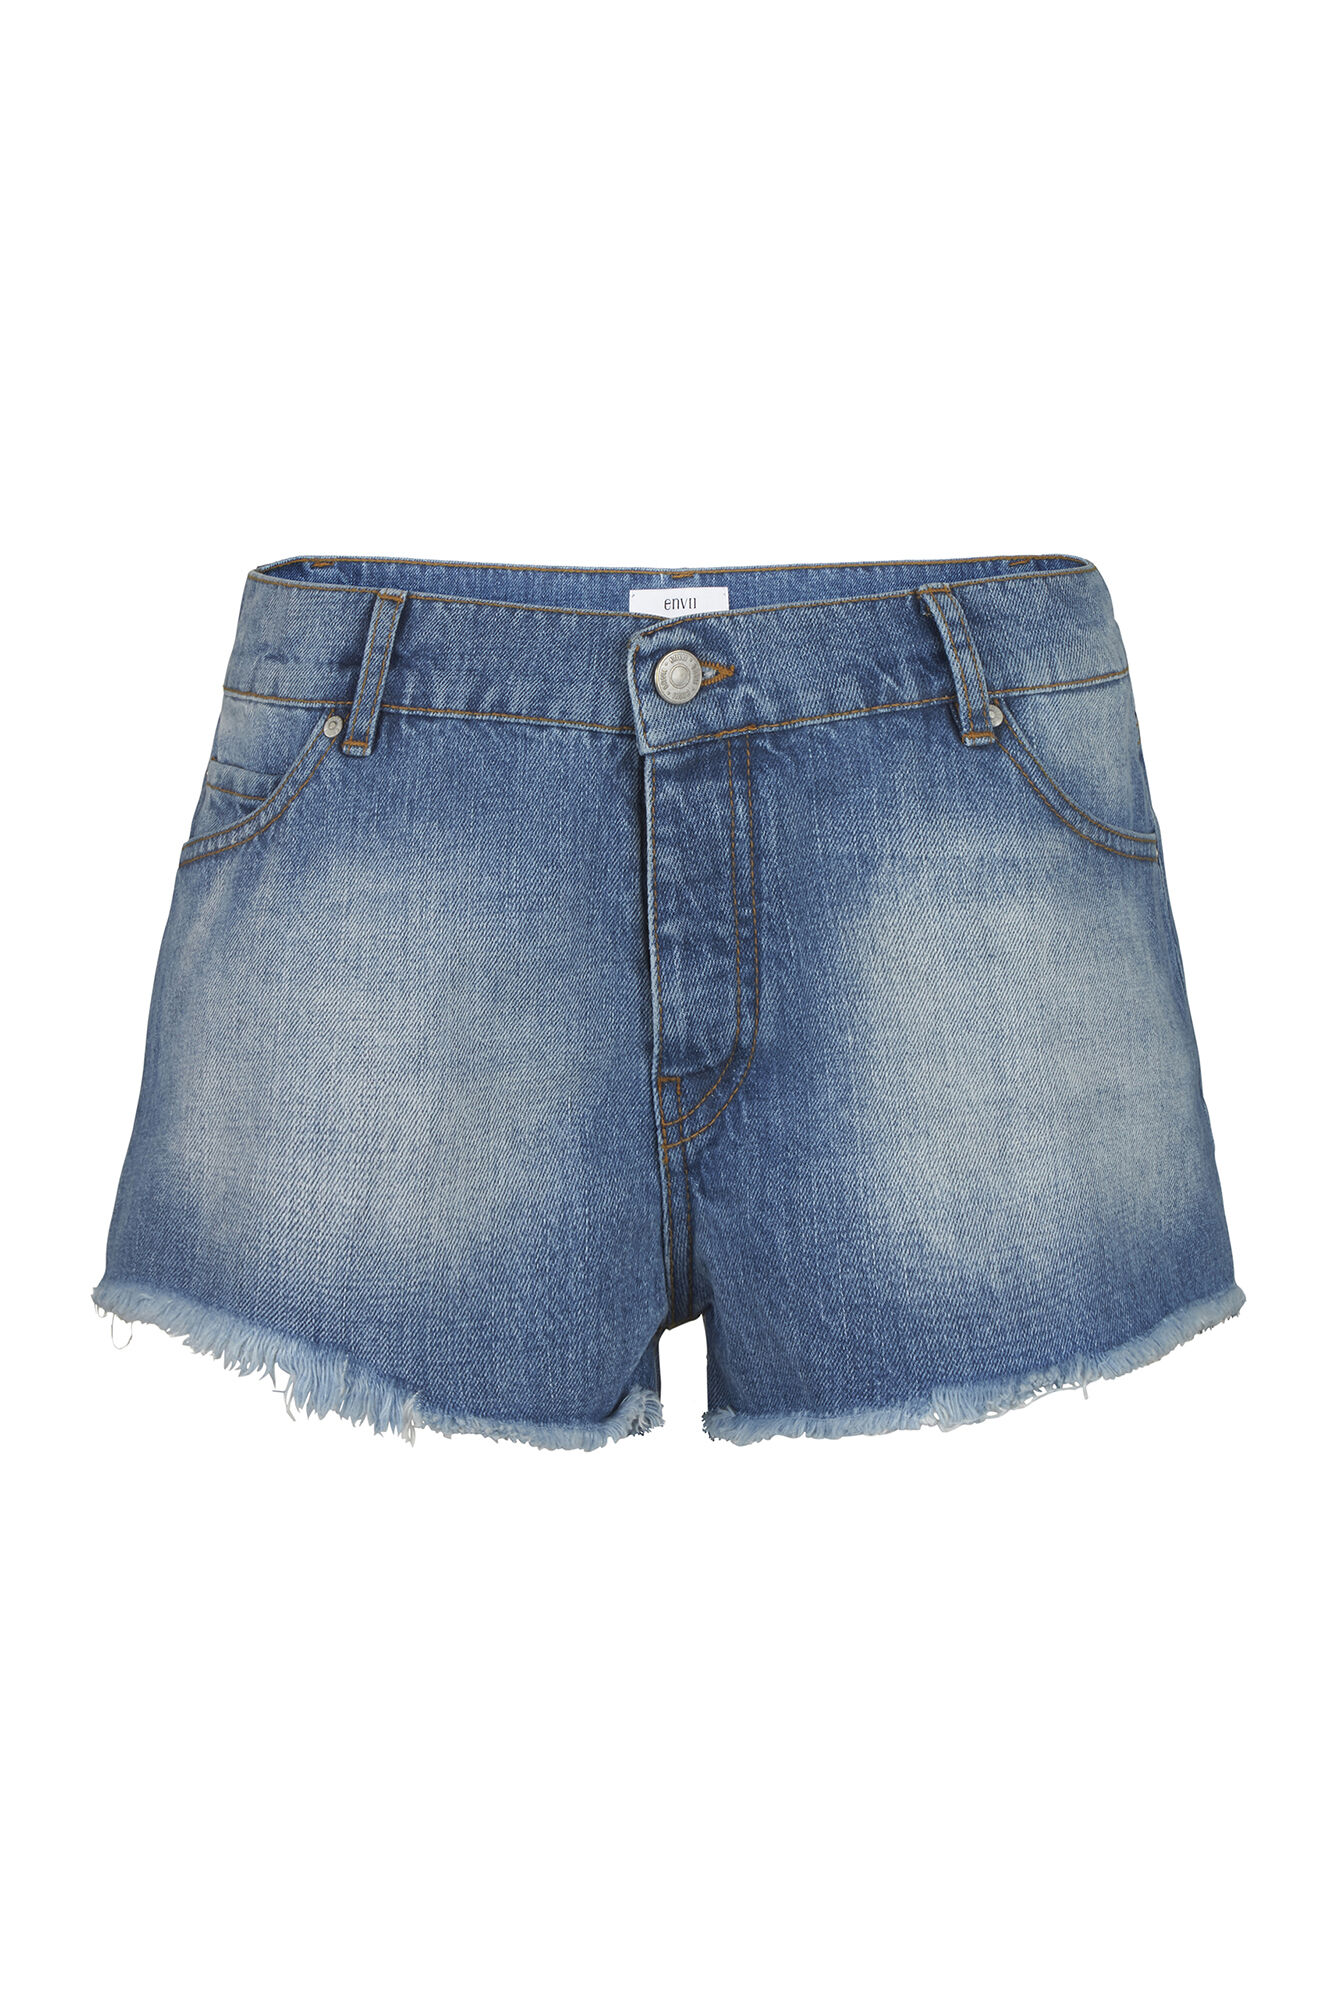 URSA SHORTS 6171, VINTAGE LIGHT BLUE